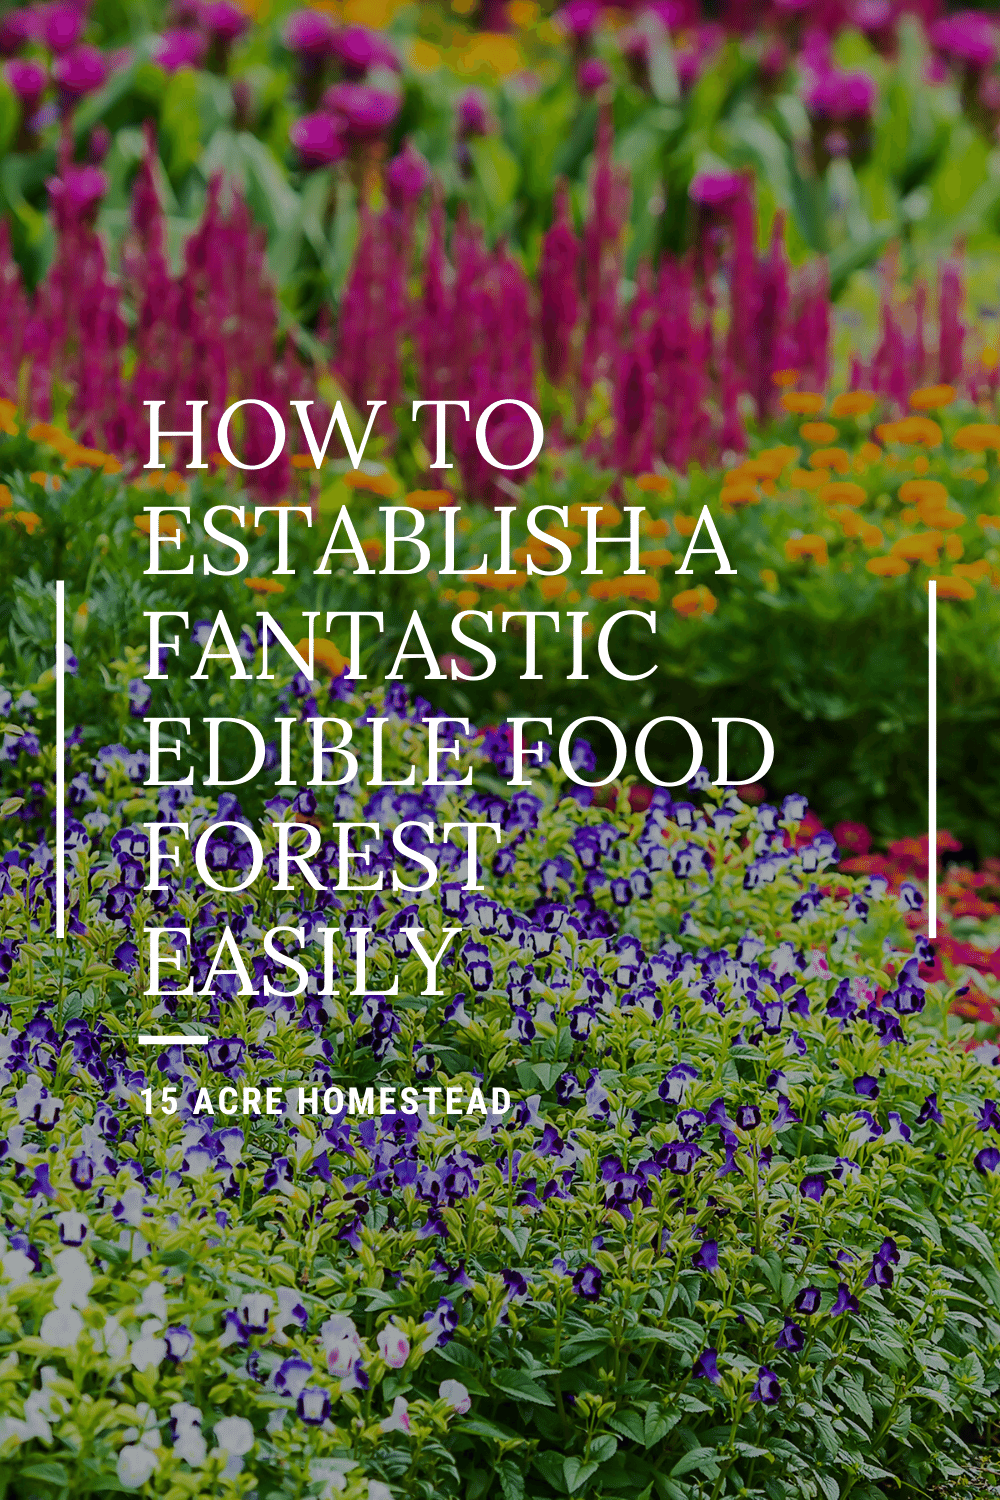 Learn to become more self-reliant by establishing an edible food forest on your homestead. This very detailed post will help you get started quickly.